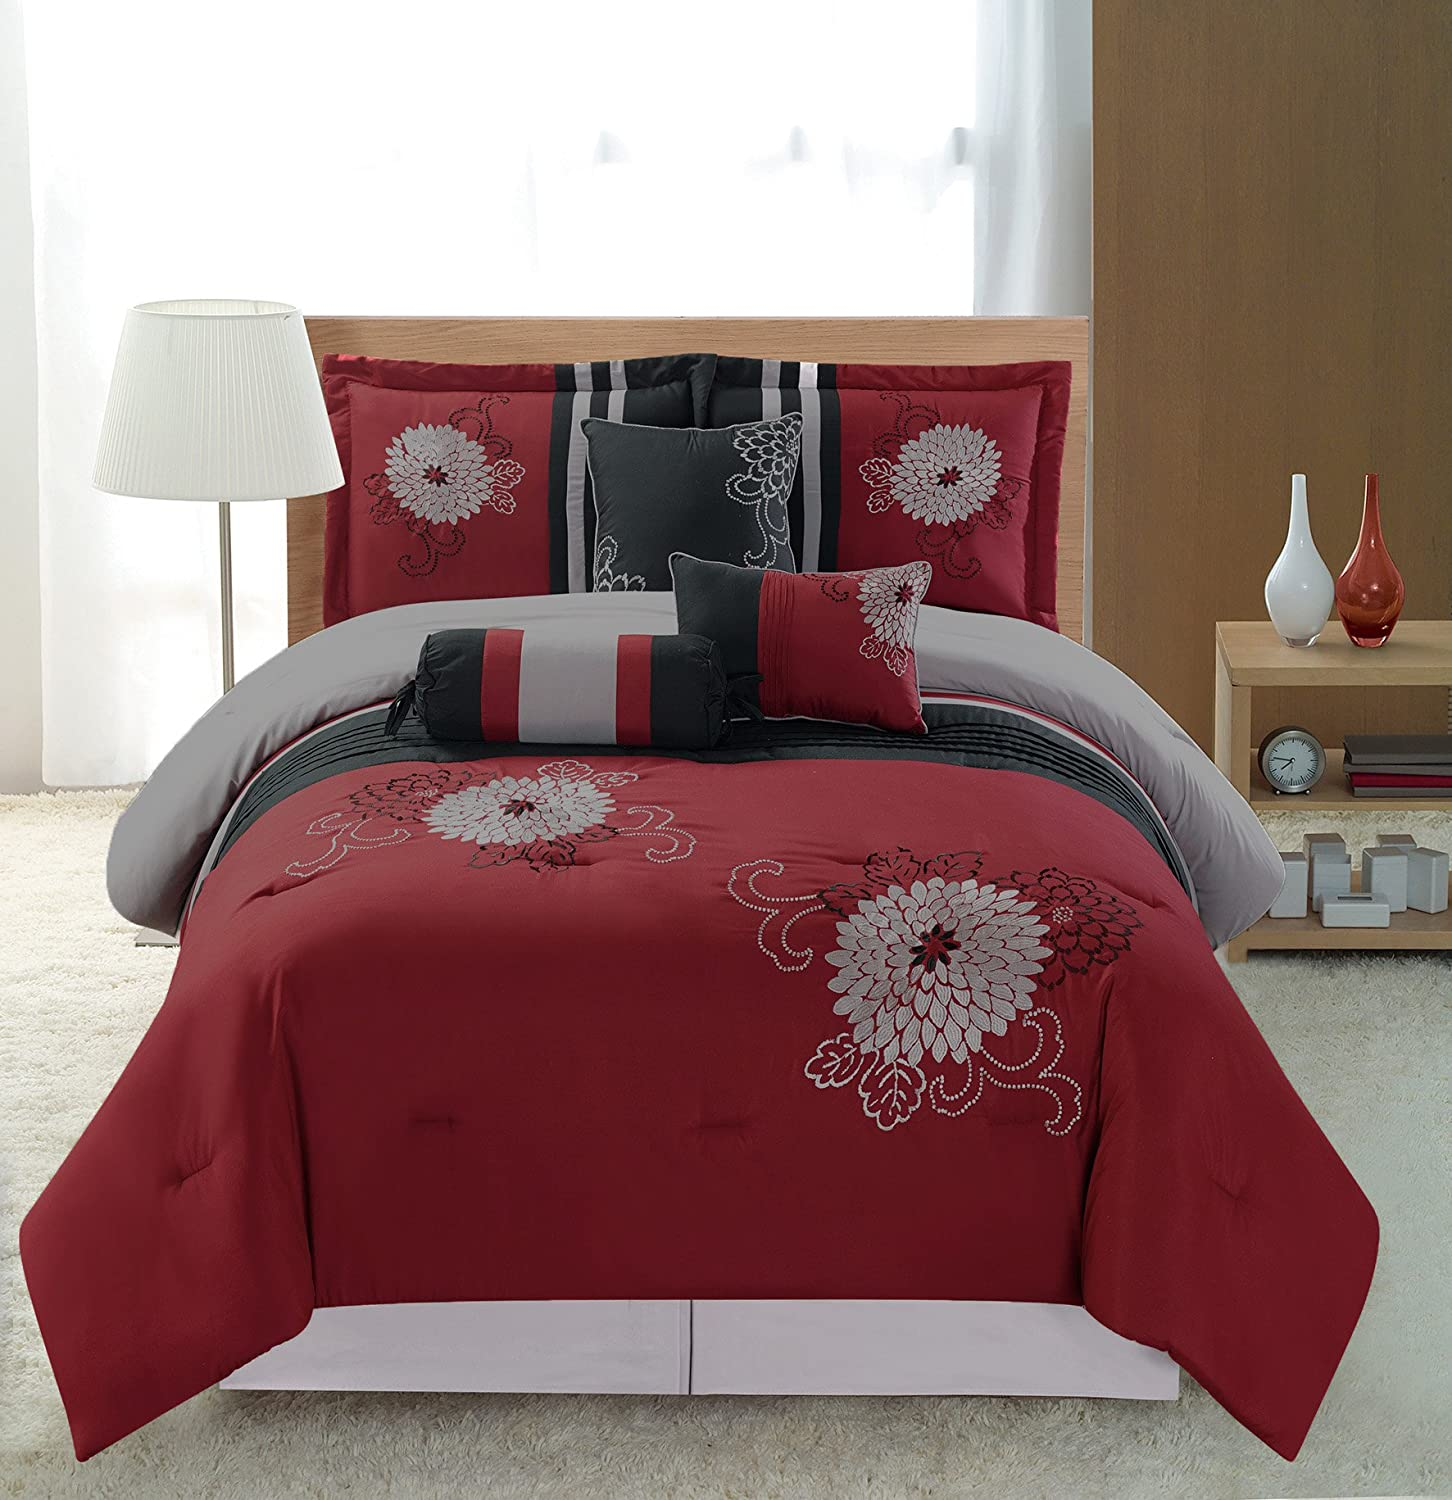 Red and black bedding - 7 Pc Embroidery Bedding Red Black Grey Comforter Set Shamz Red Queen